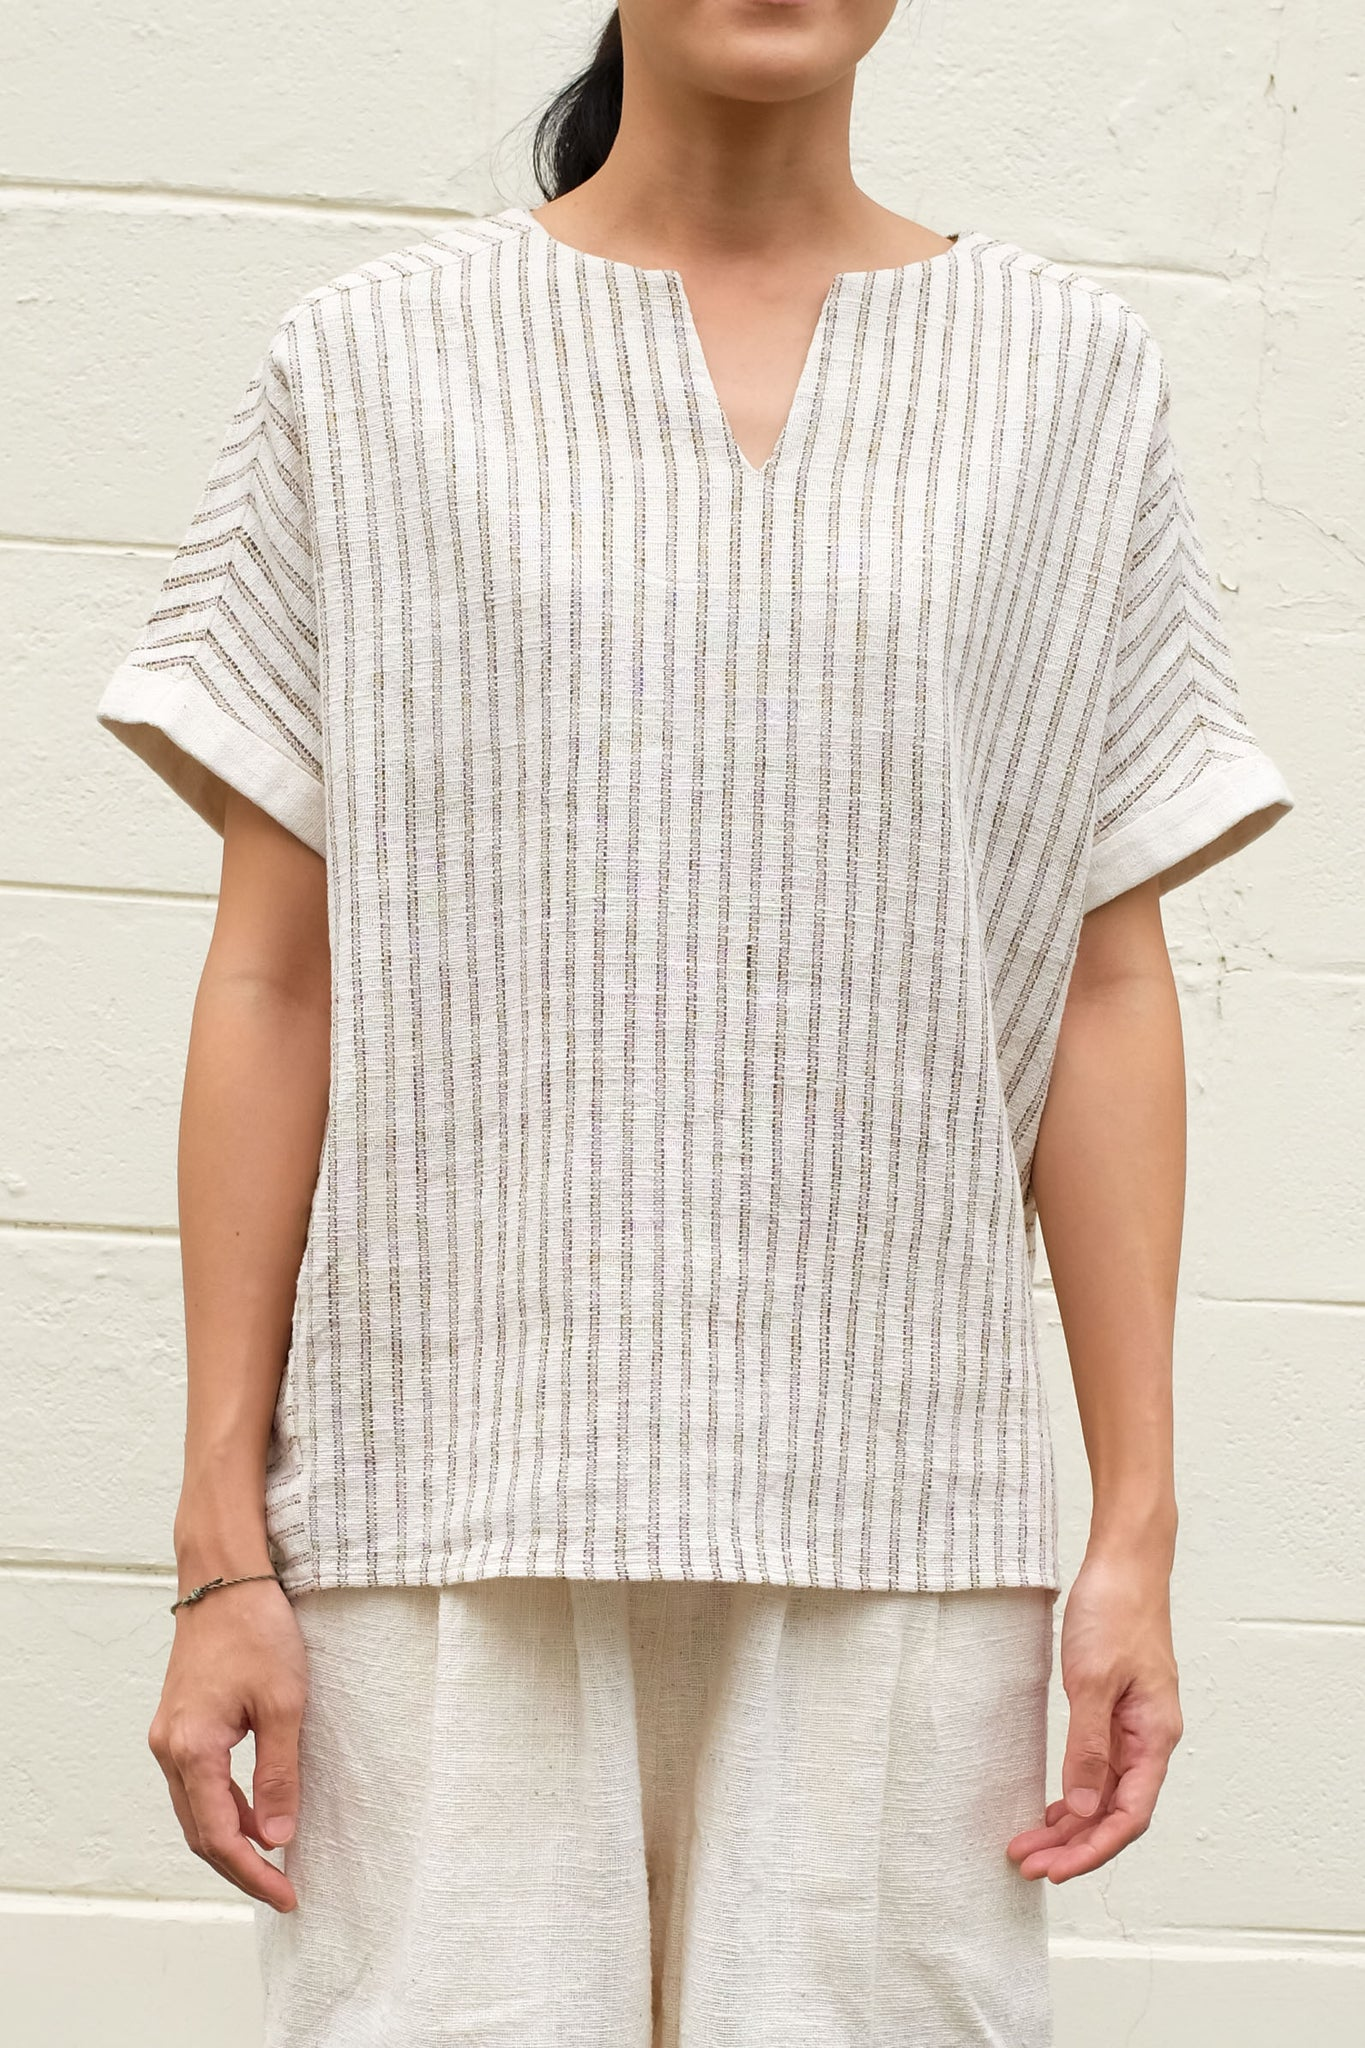 [UNISEX] Slot Collar Shortsleeve Blouse